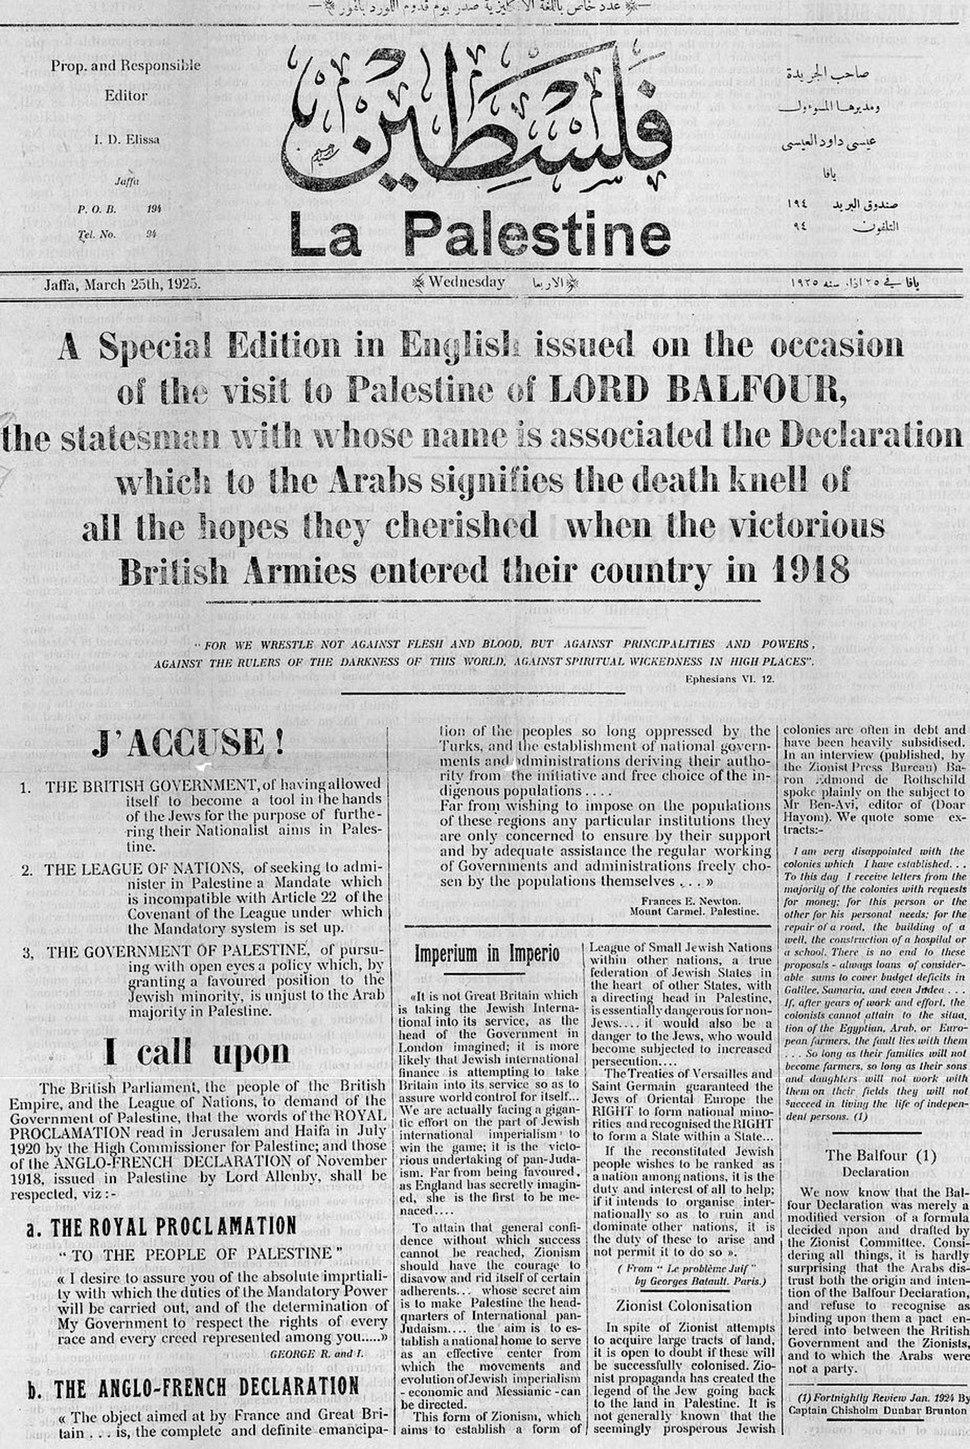 Filastin (La Palestine) March 25th 1925 editorial addressed to Lord Balfour.pdf